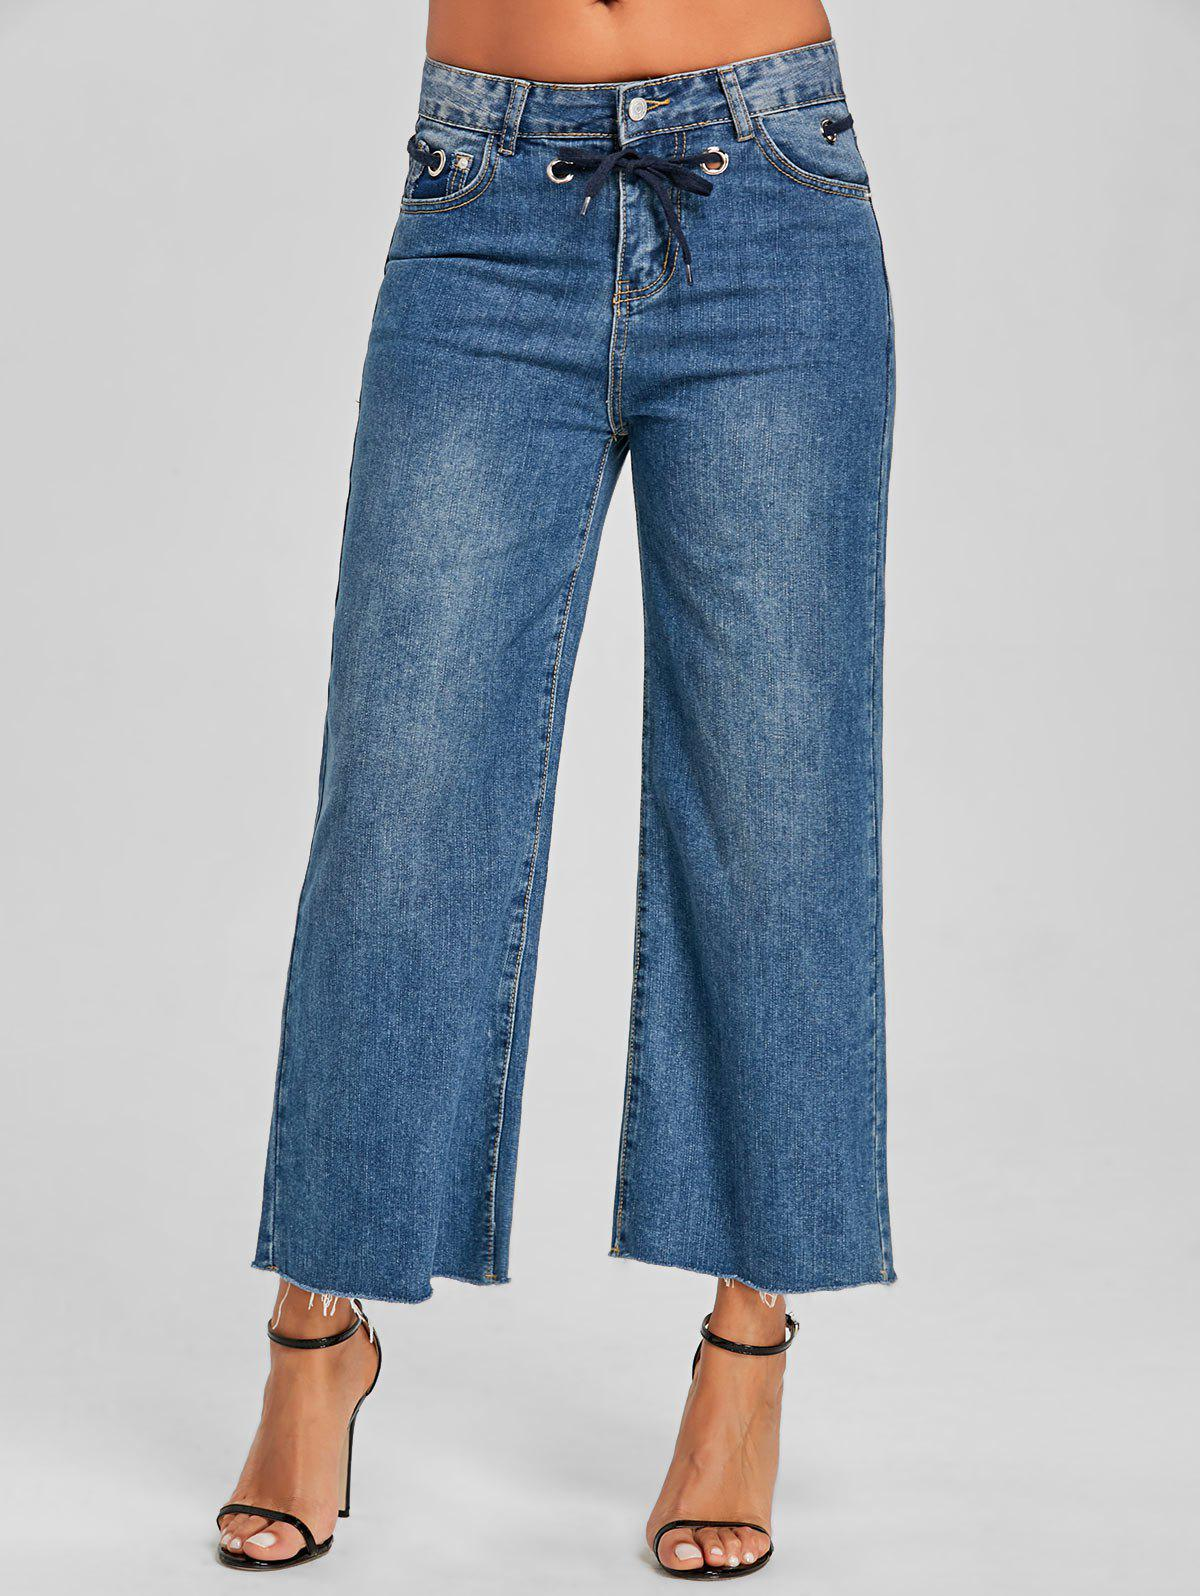 Grommet Tie Up Wide Leg Jeans - DENIM BLUE L